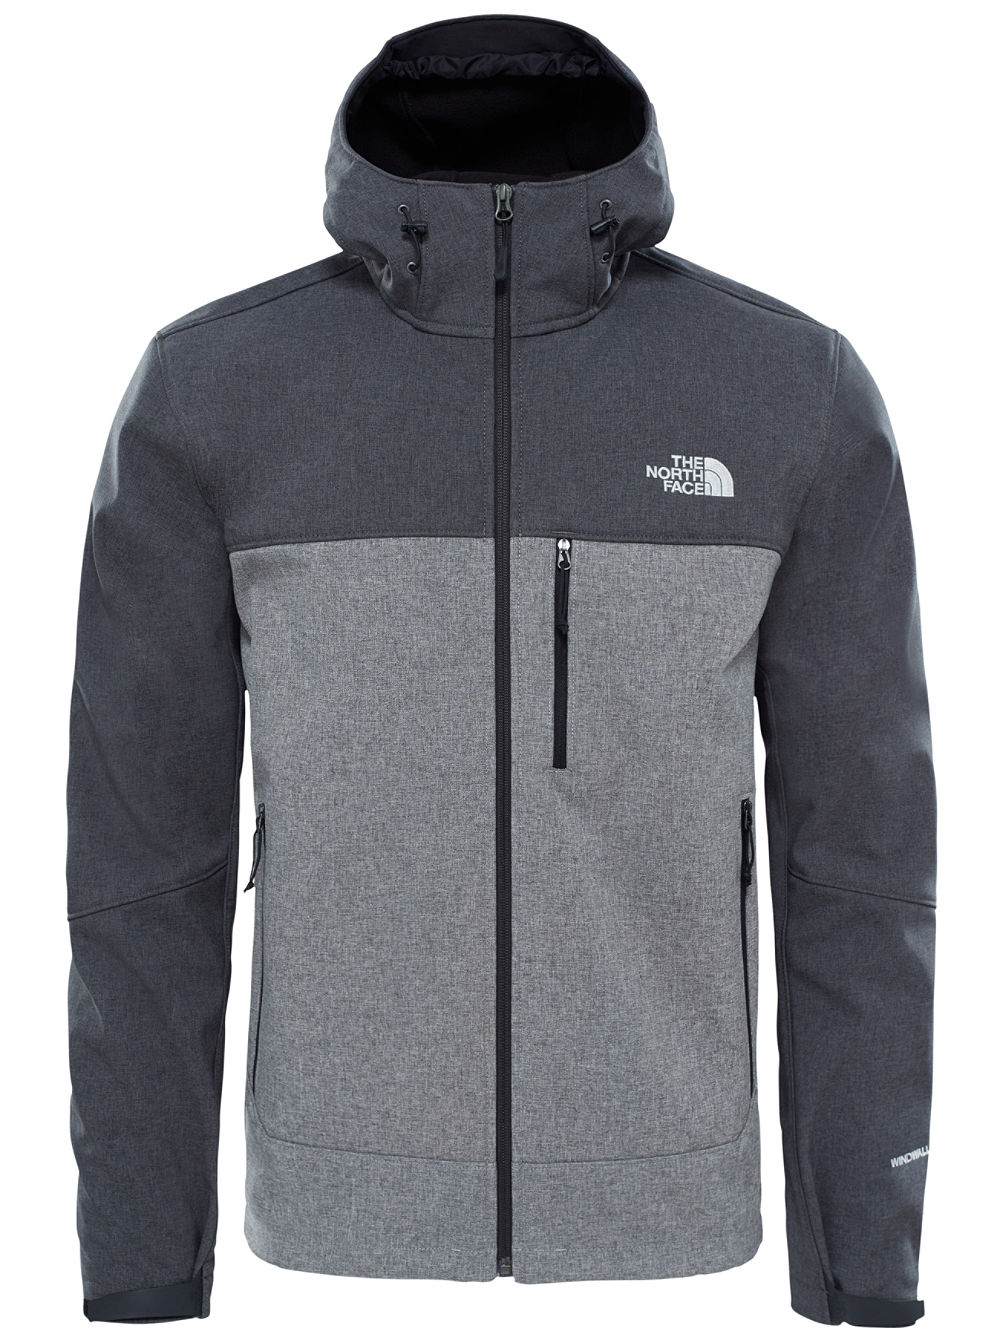 Apex Bionic Hooded Jacket